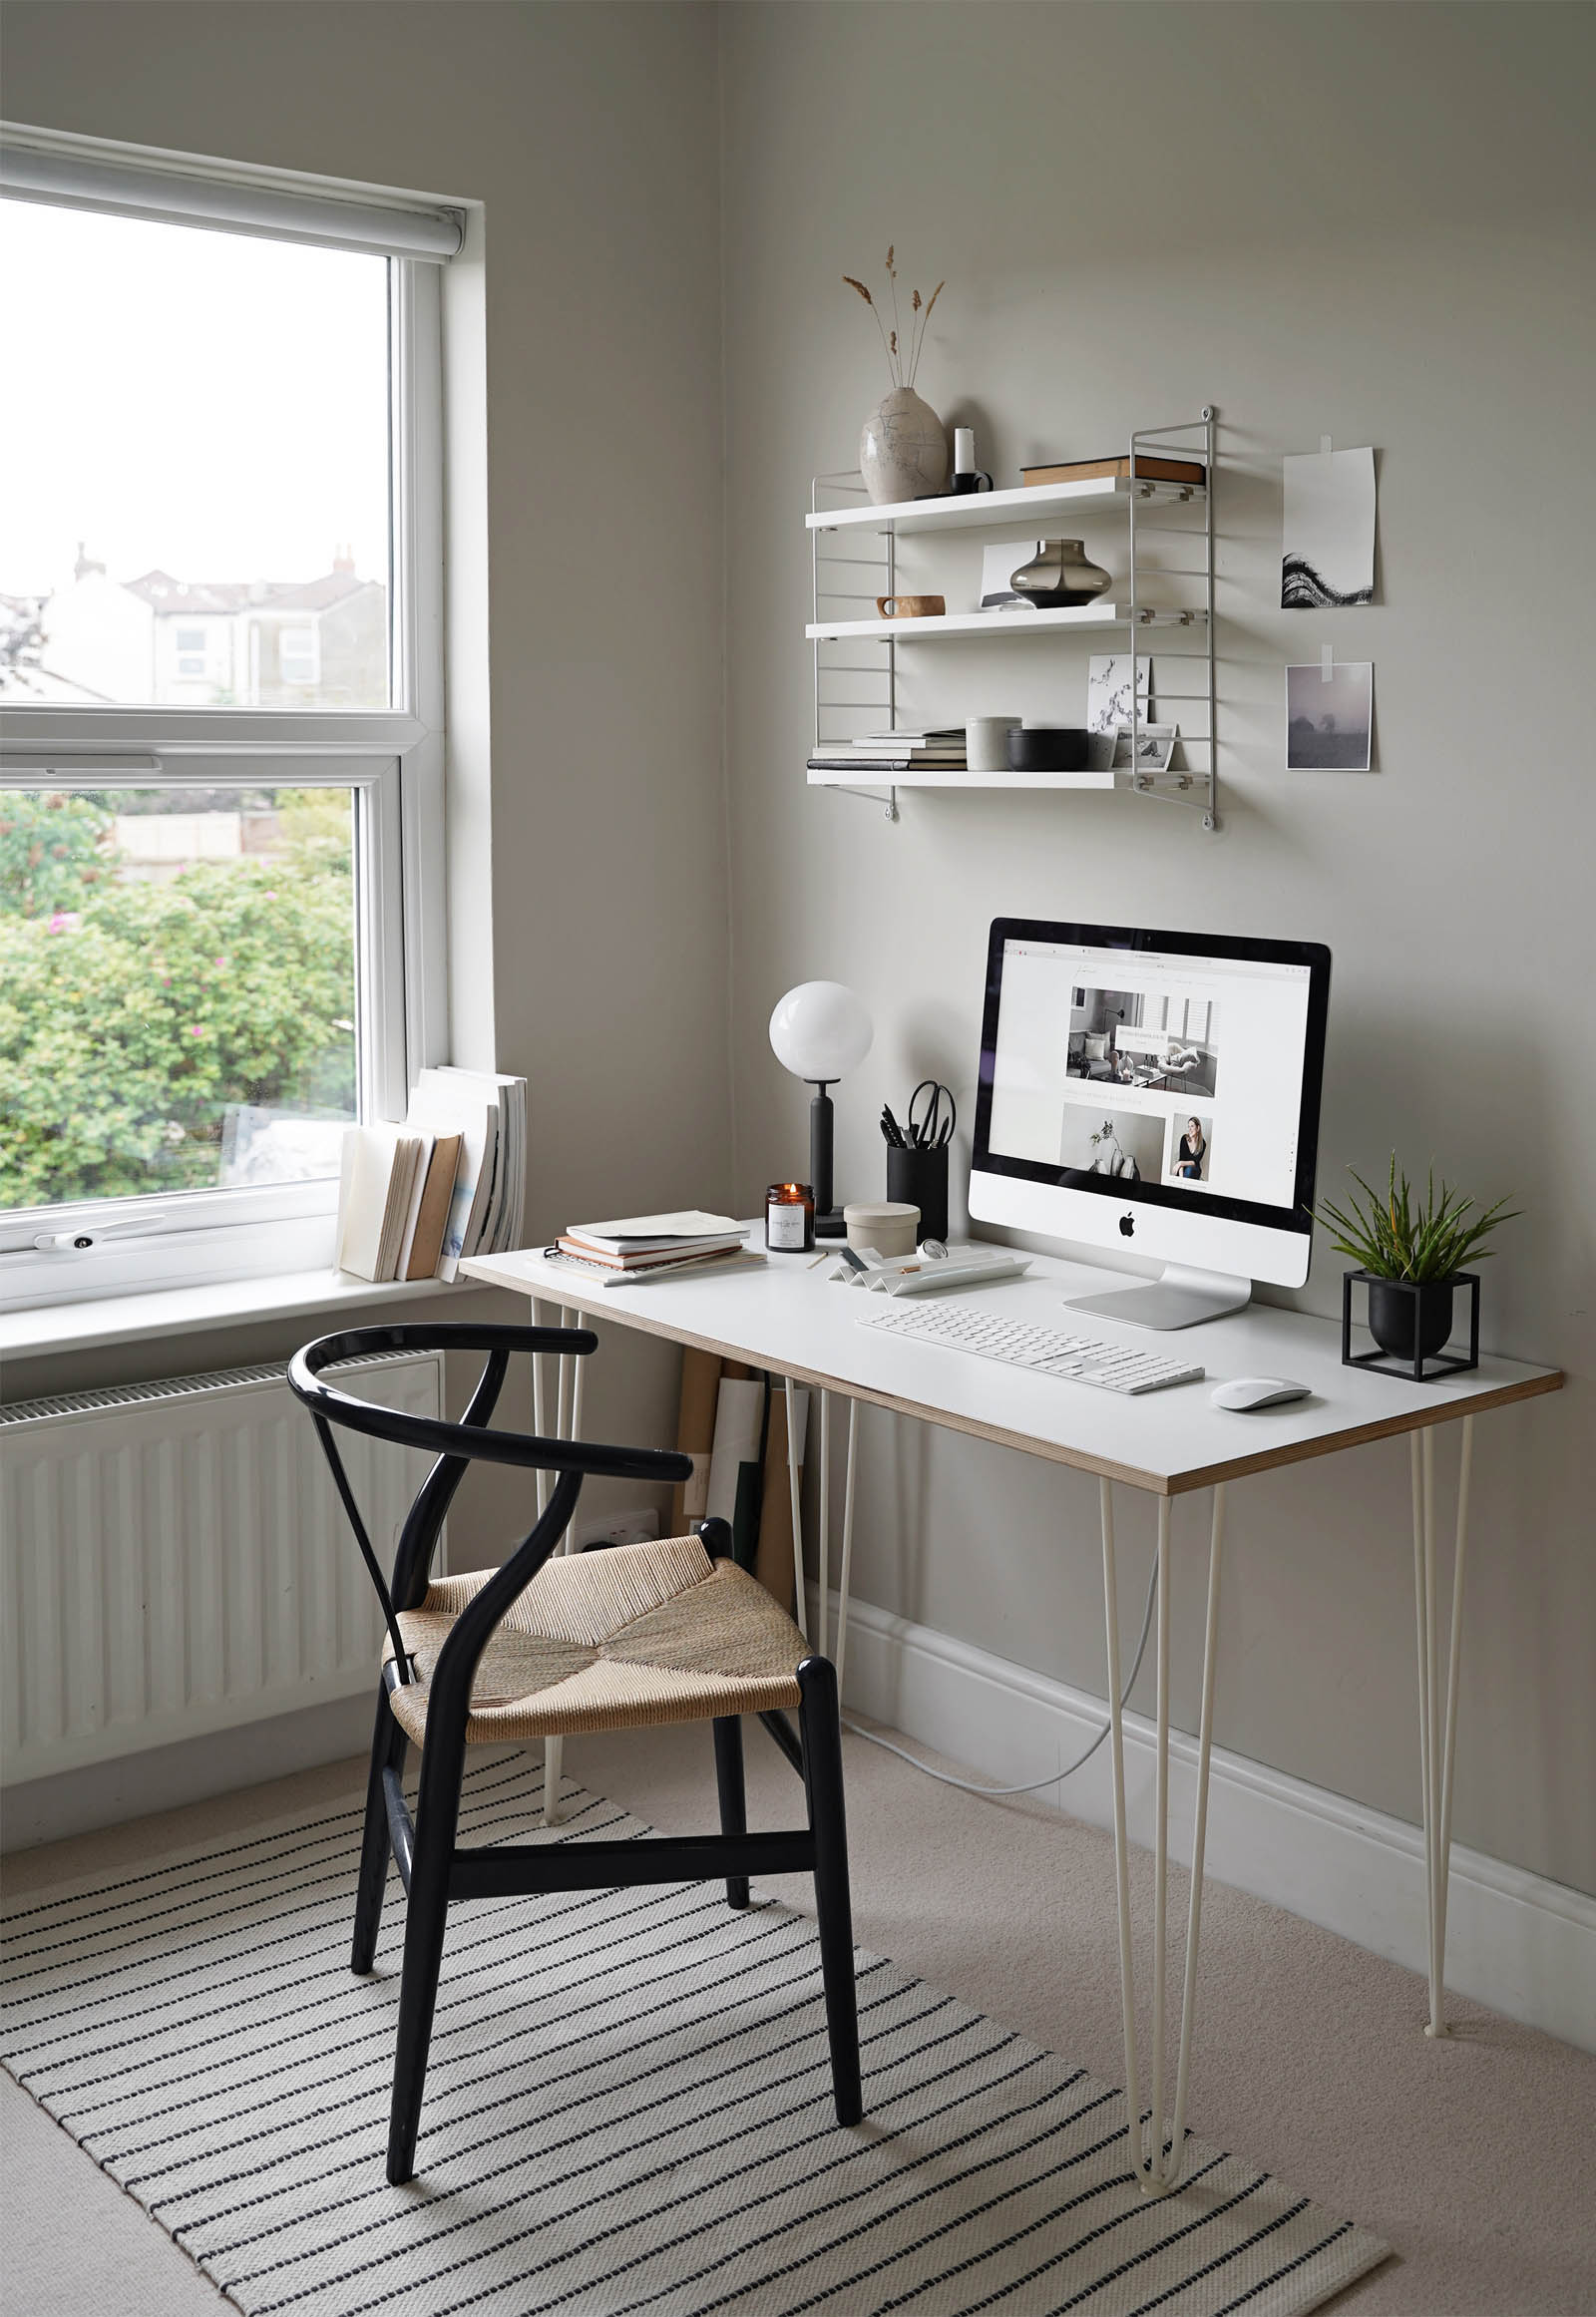 Calming grey home office decor with minimalist desk setup, String Pocket shelving, pale beige carpet and Wishbone chair | These Four Walls blog